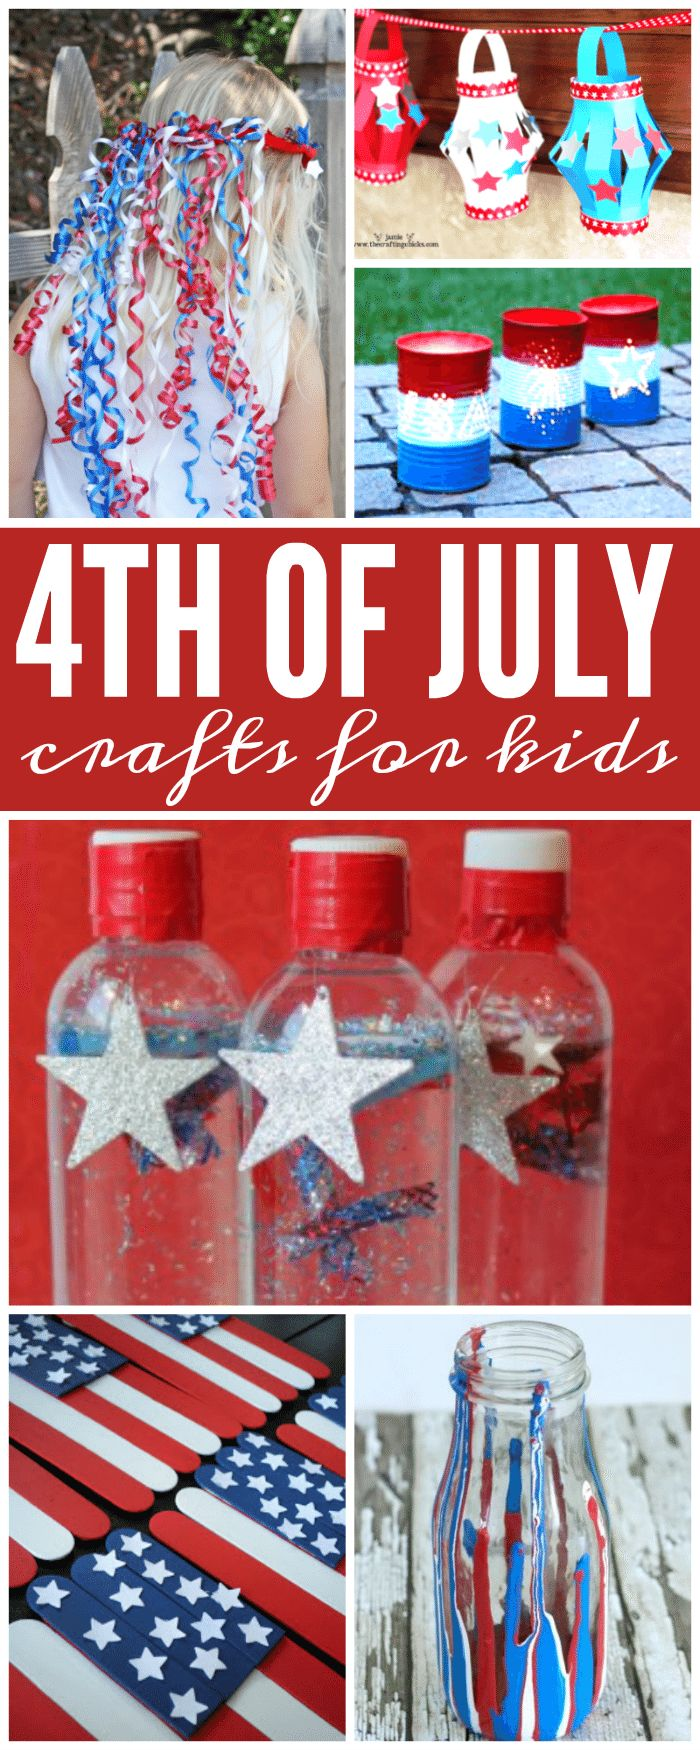 Here are some super fun 4th of July Crafts for Kids for you to try with your family! I LOVE these Red, White, and Blue Activities!